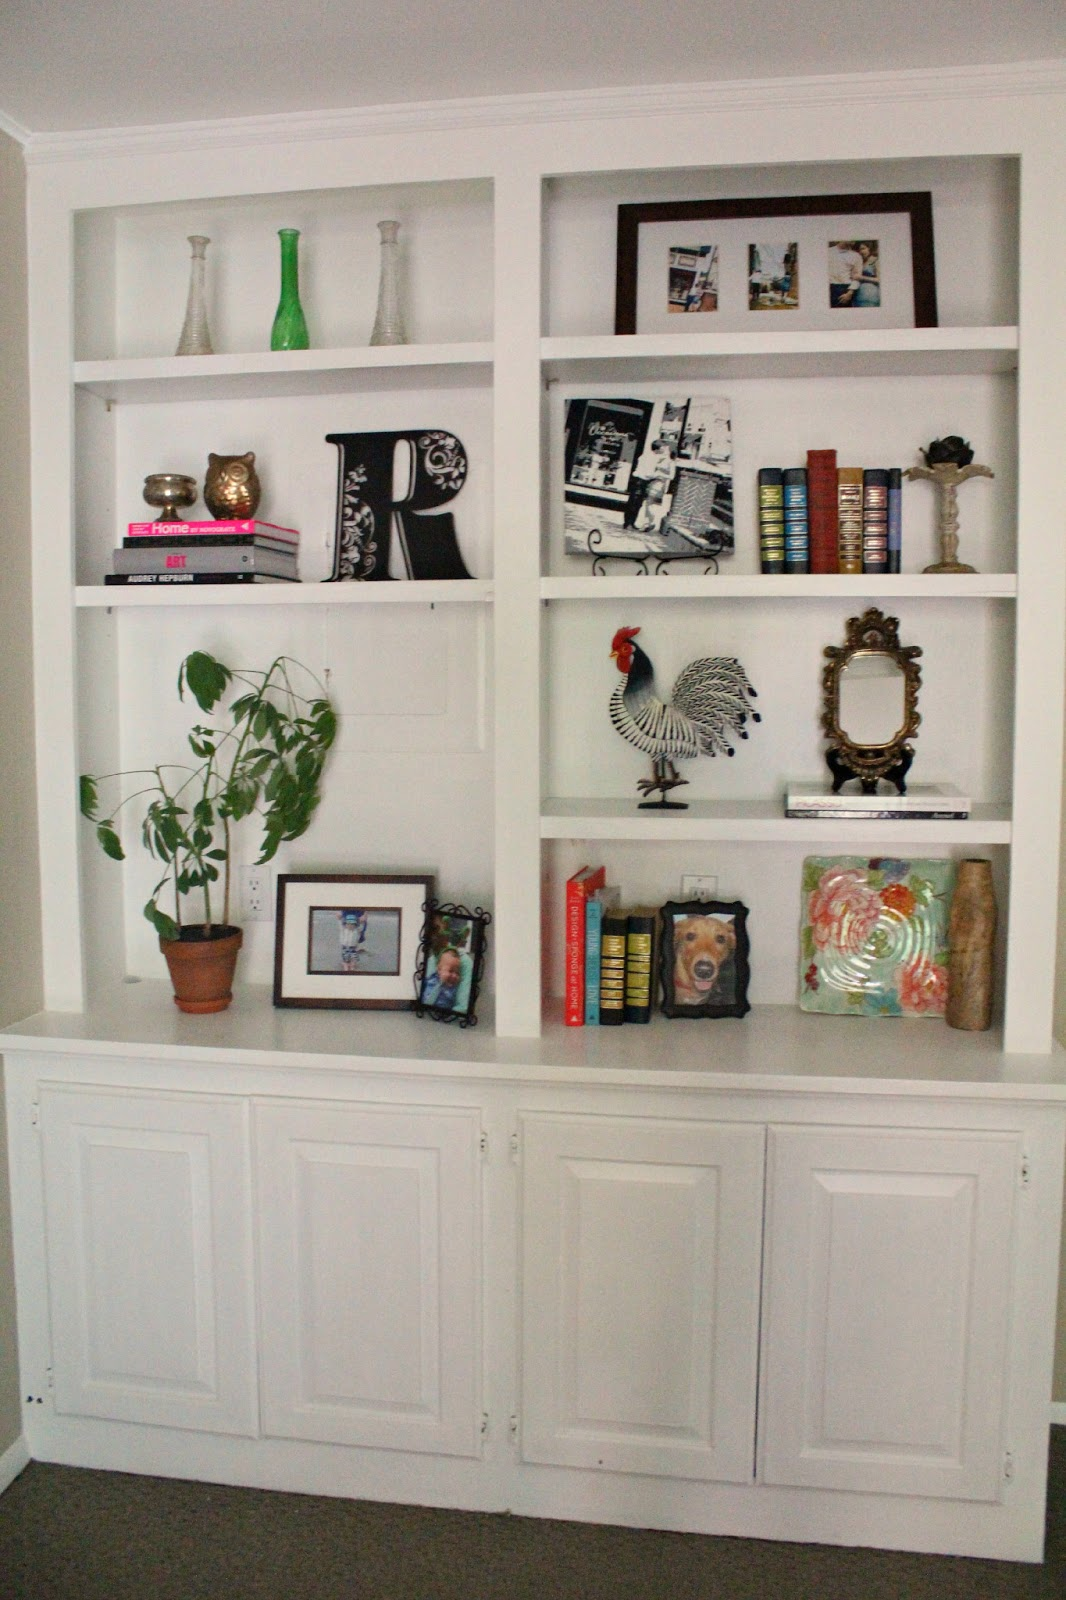 Bookshelf Decor | The Flat Decoration